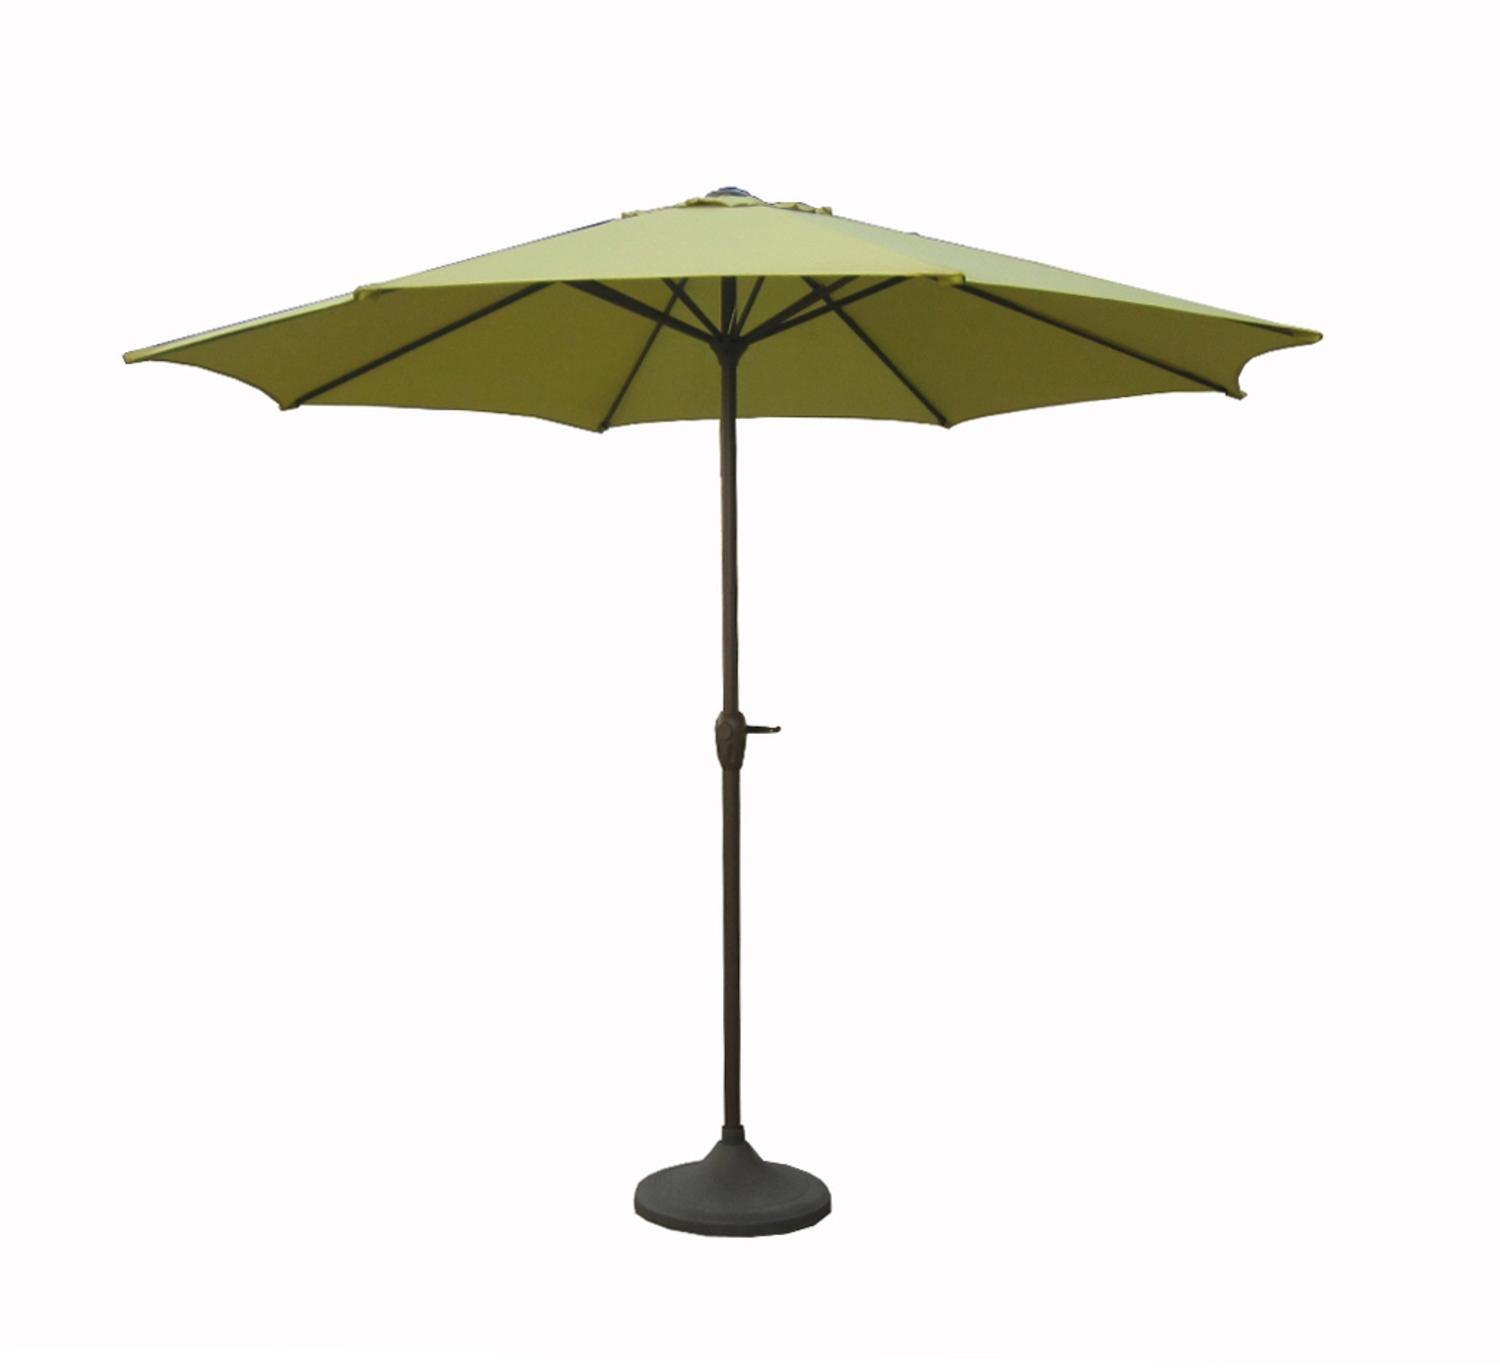 9' Outdoor Patio Market Umbrella with Hand Crank and Tilt - Sage/Brown and Black